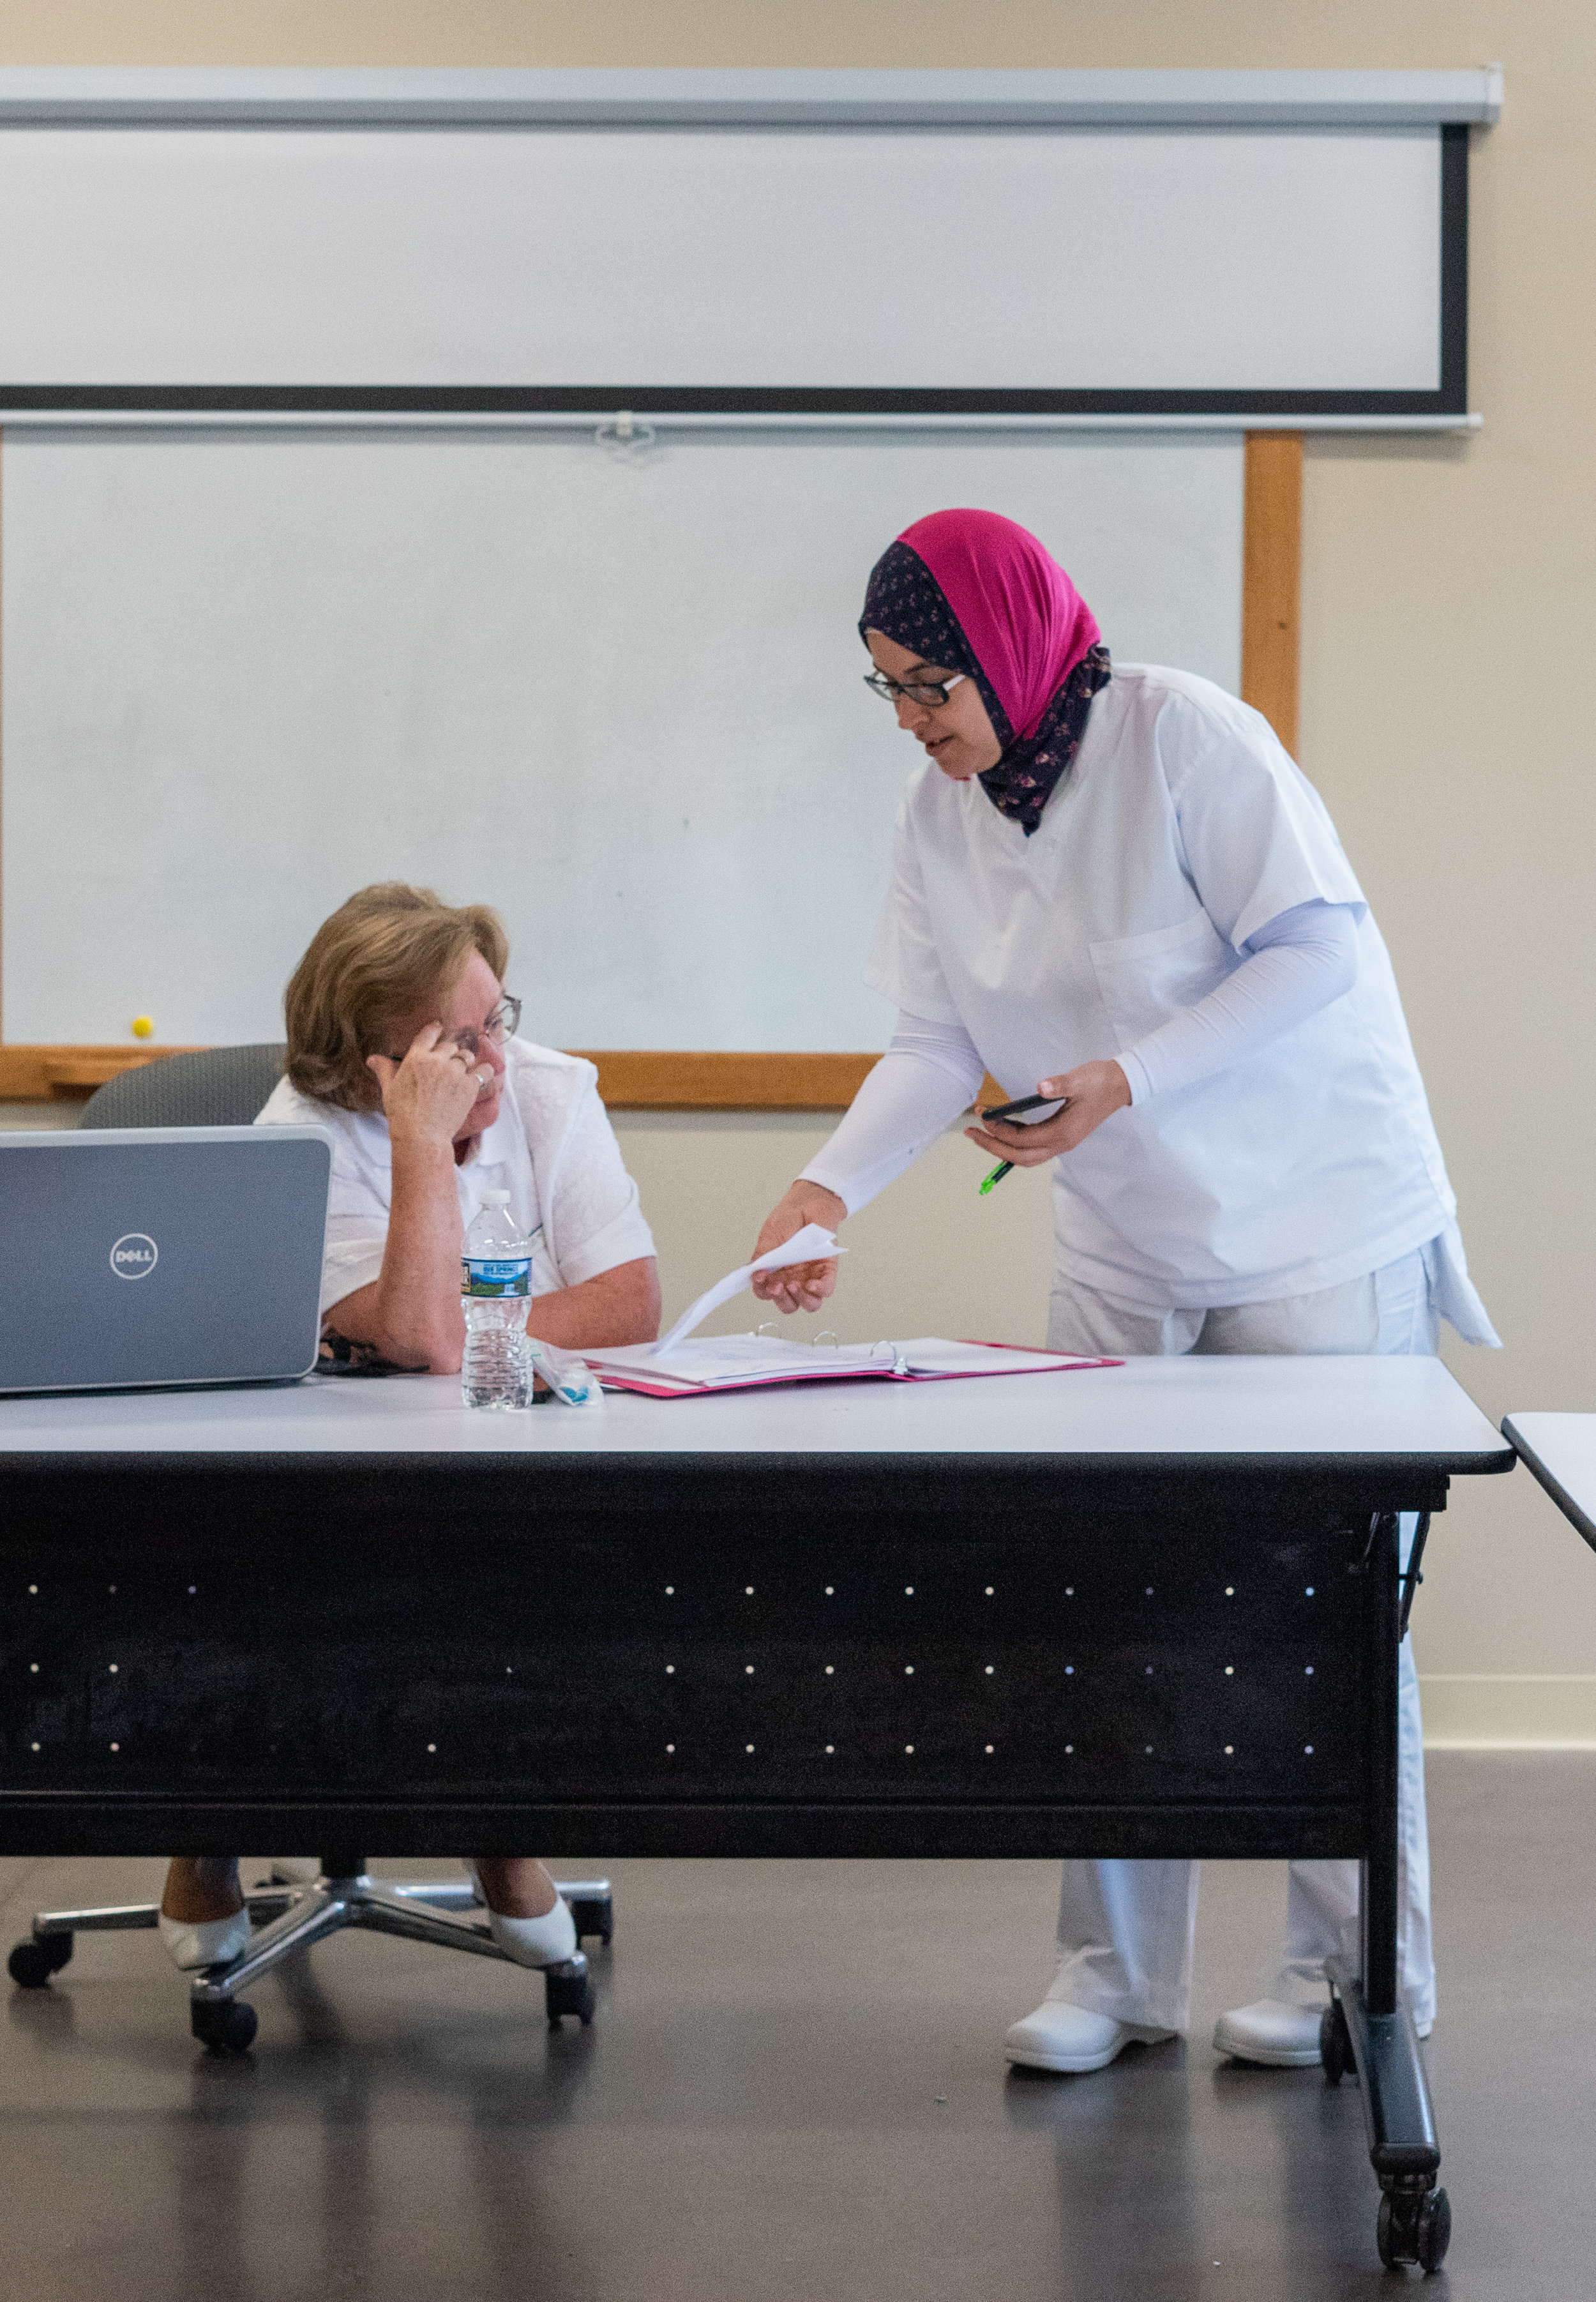 Nurse Aide program instructor helps a student with her work. The instructor has been teaching Nurse Aide programs at New Hope Ministries for 8 years and plans to continue for many more years to come.